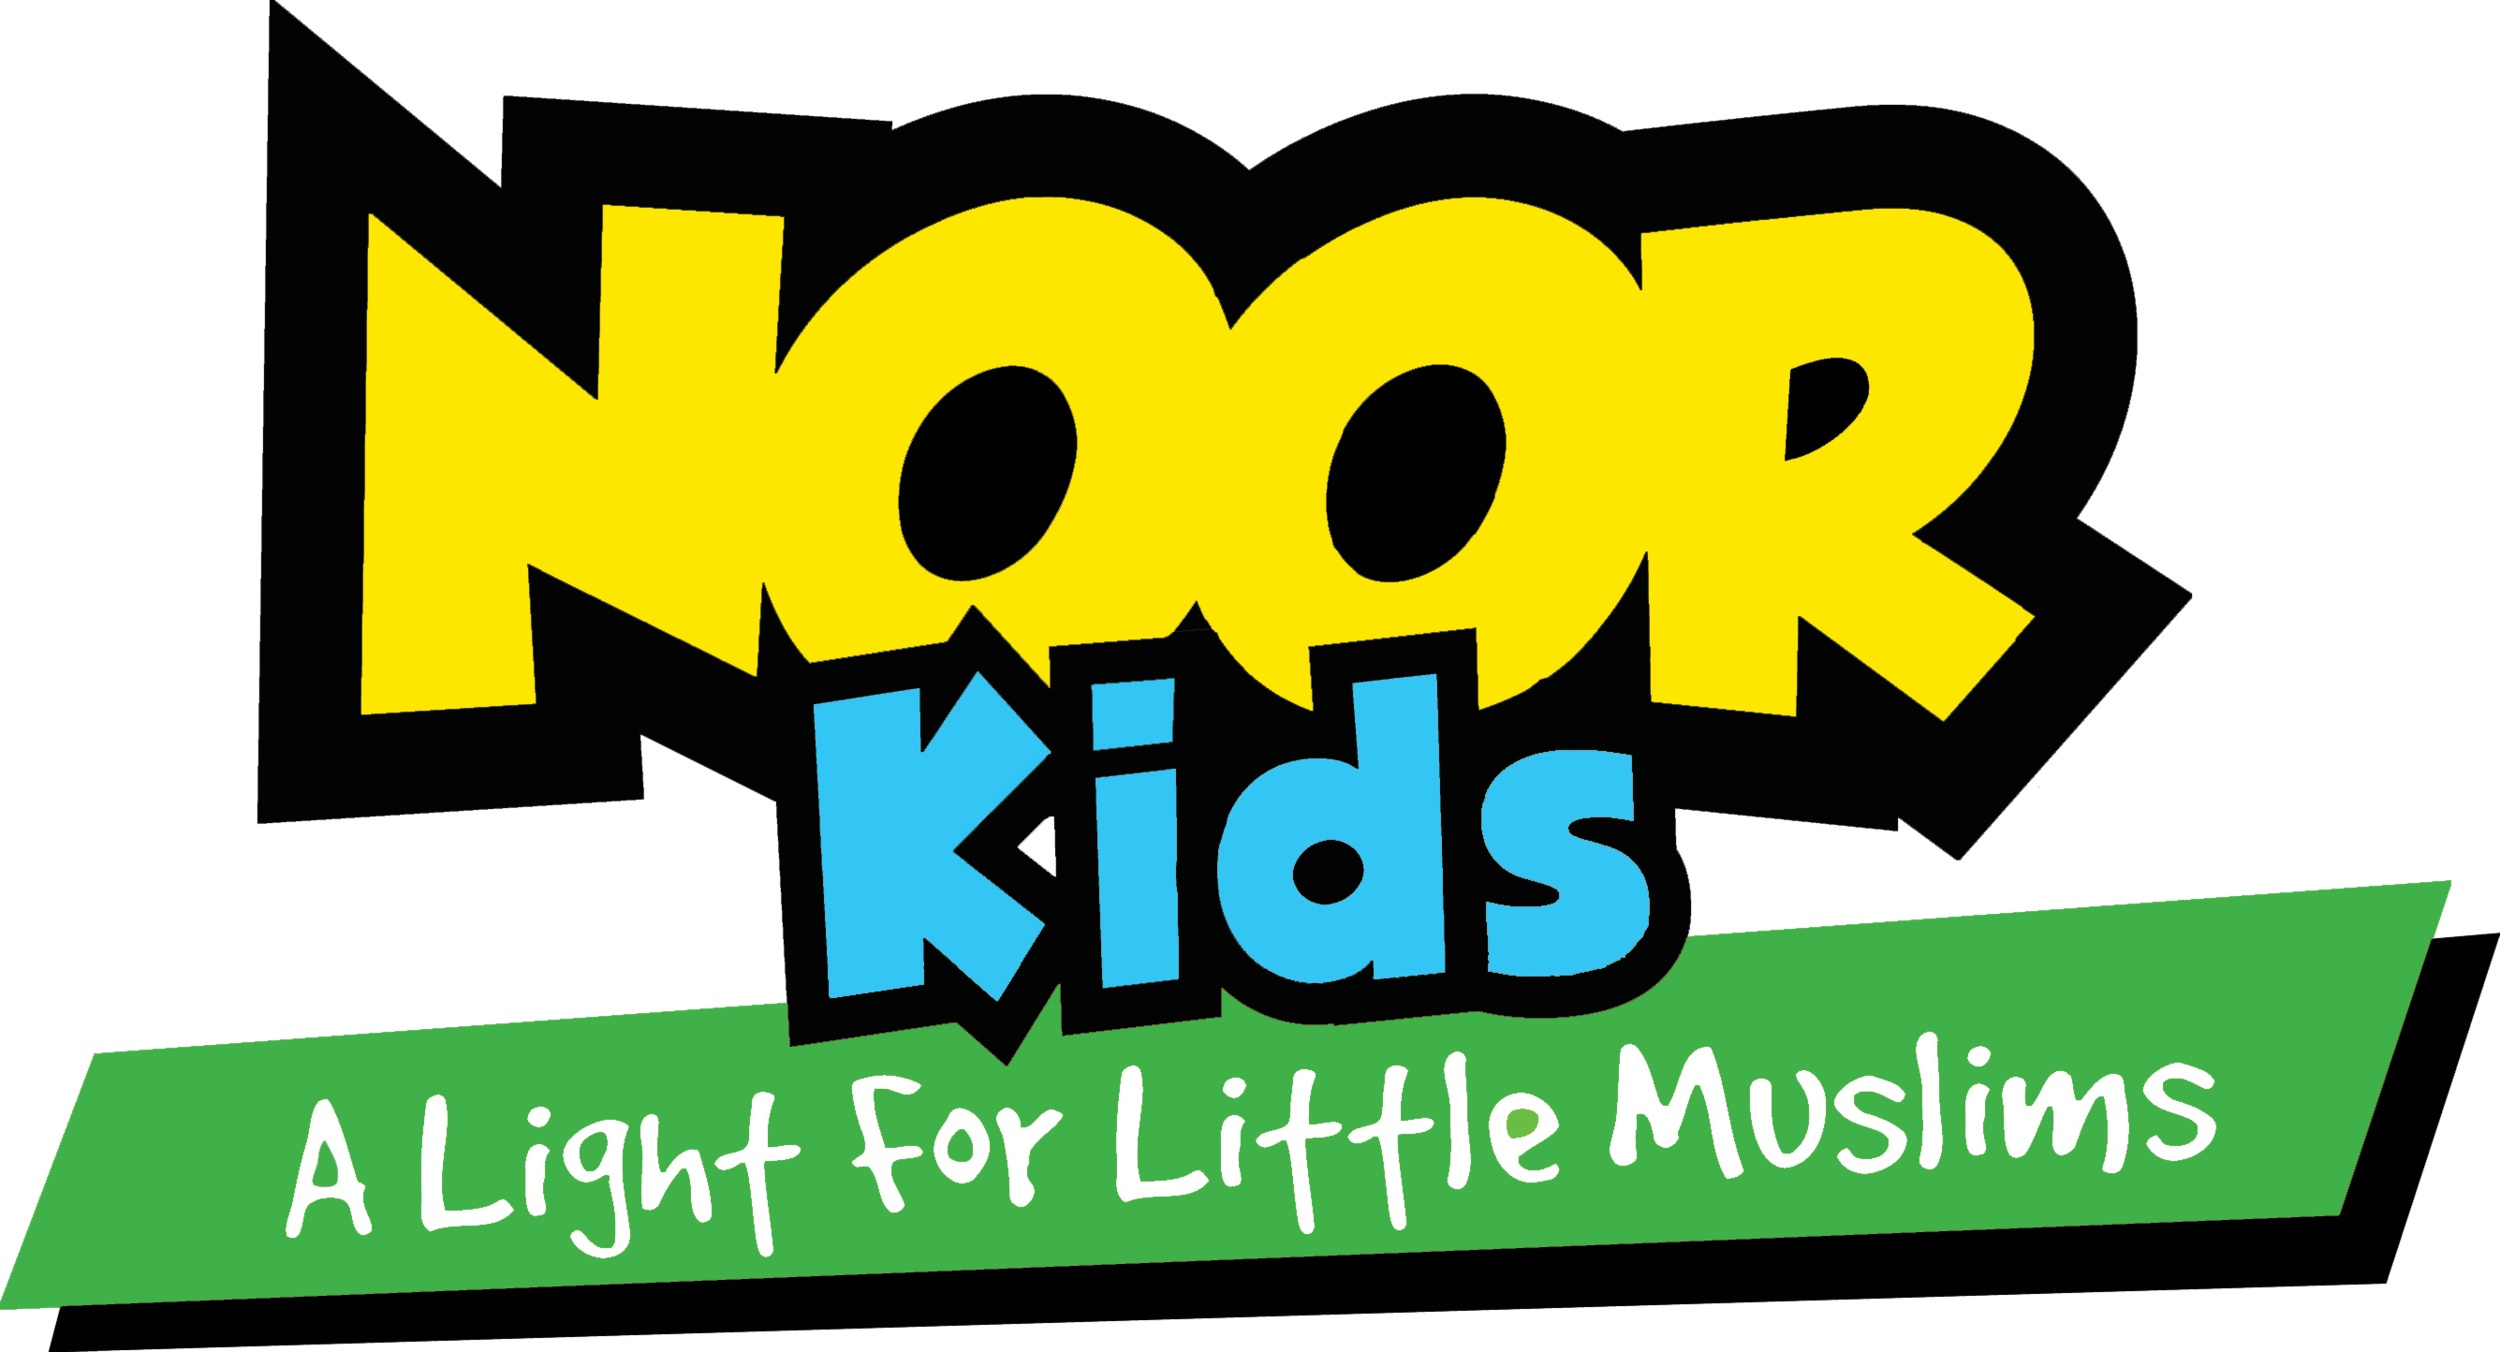 - A warm welcome to our friends at Noor Kids who are joining the Green Your Eid challenge!